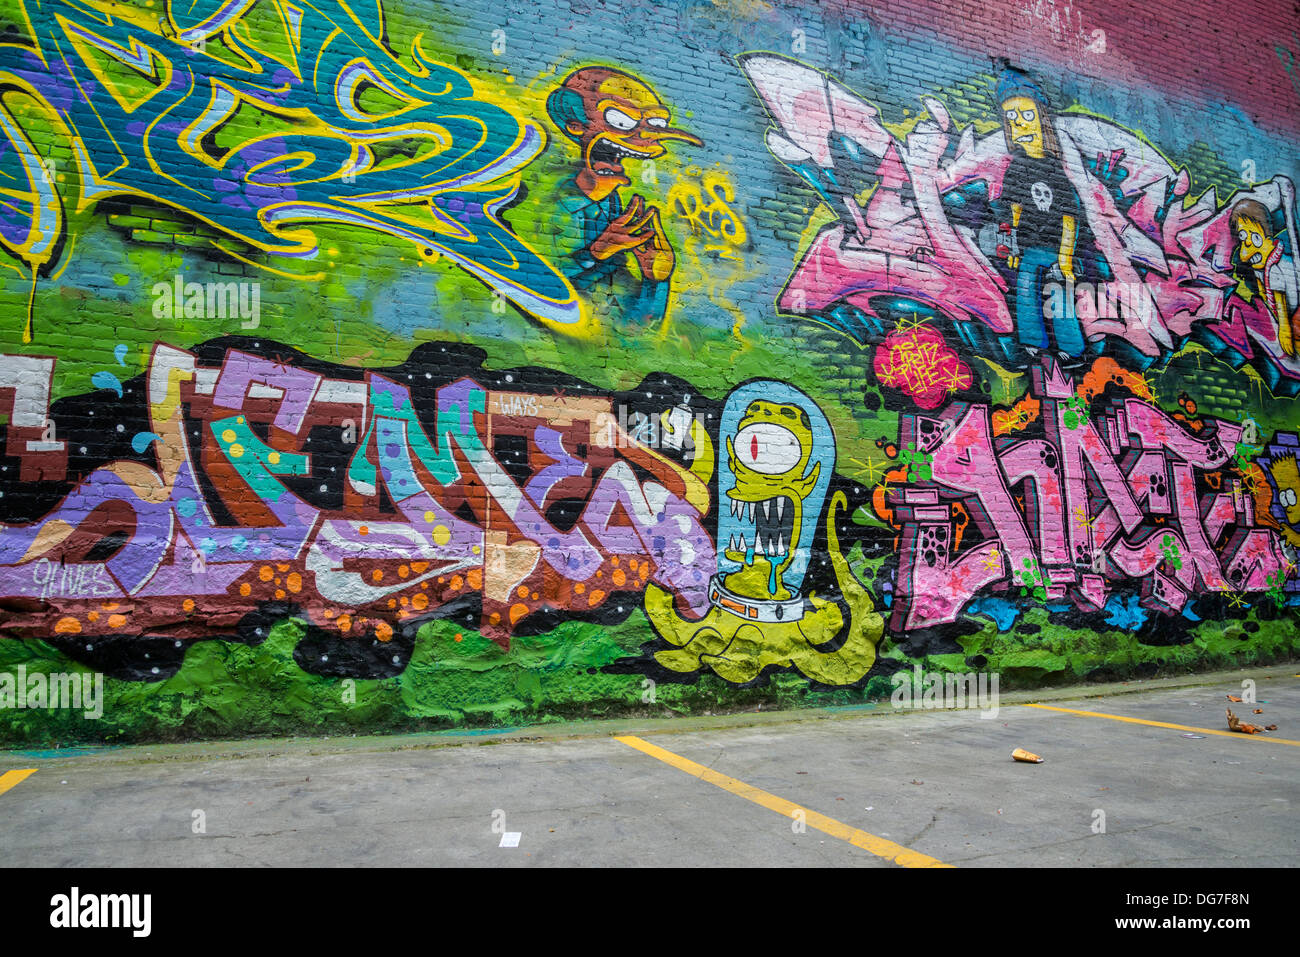 Simpsons themed , graffiti style mural, DTES, Vancouver, Britsih Columbia, Canada - Stock Image